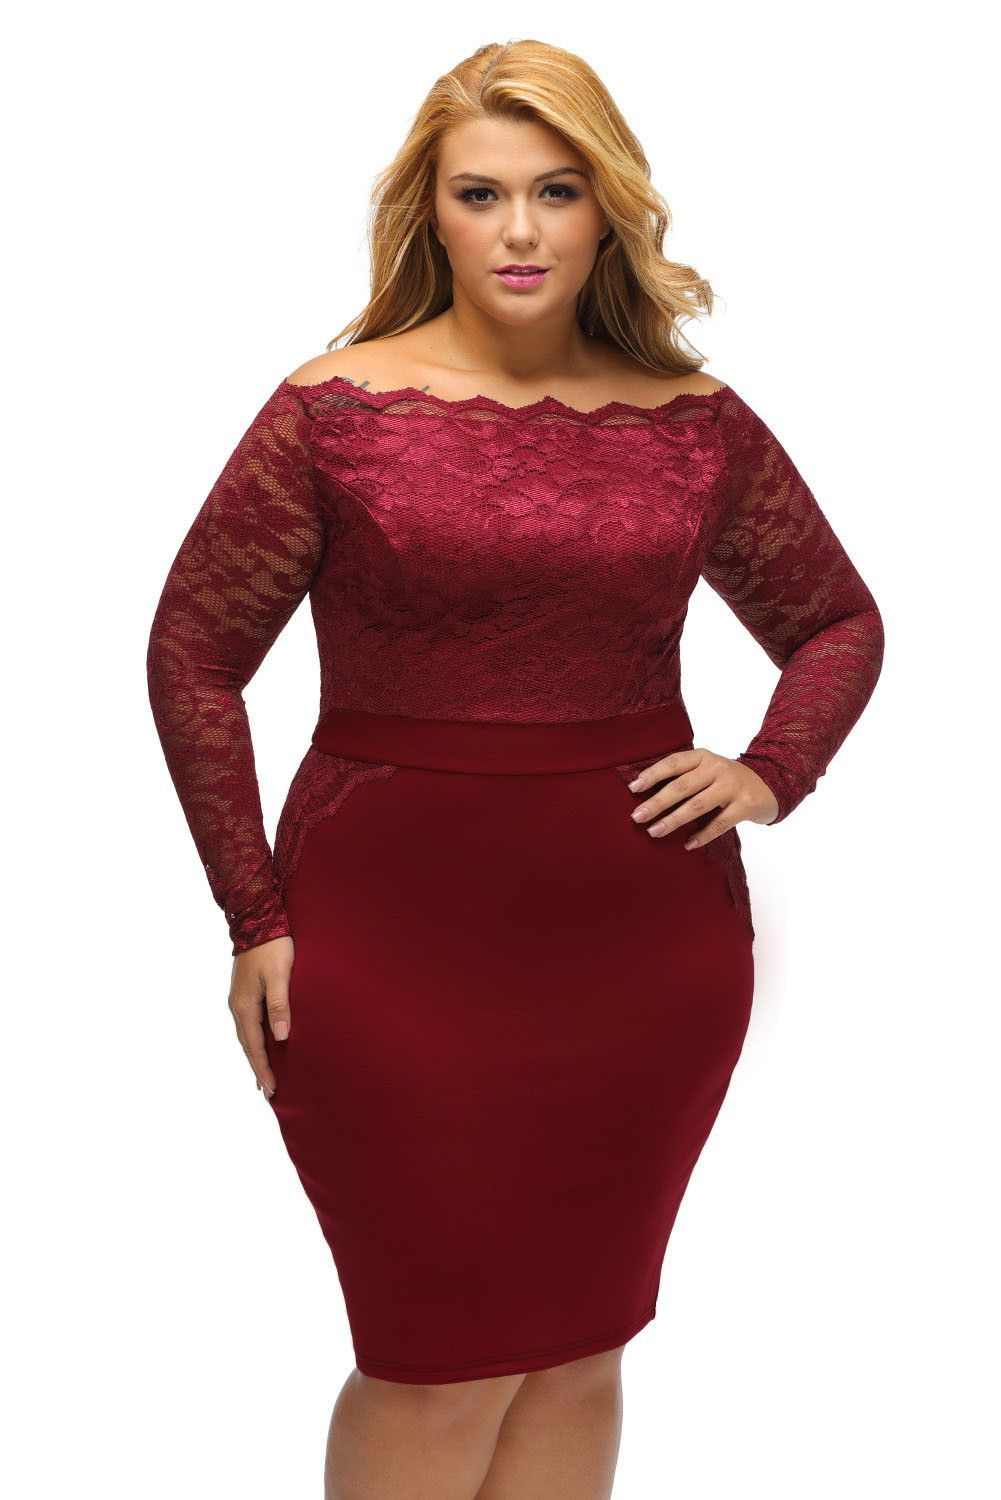 red off shoulder long sleeve plus size lace dress